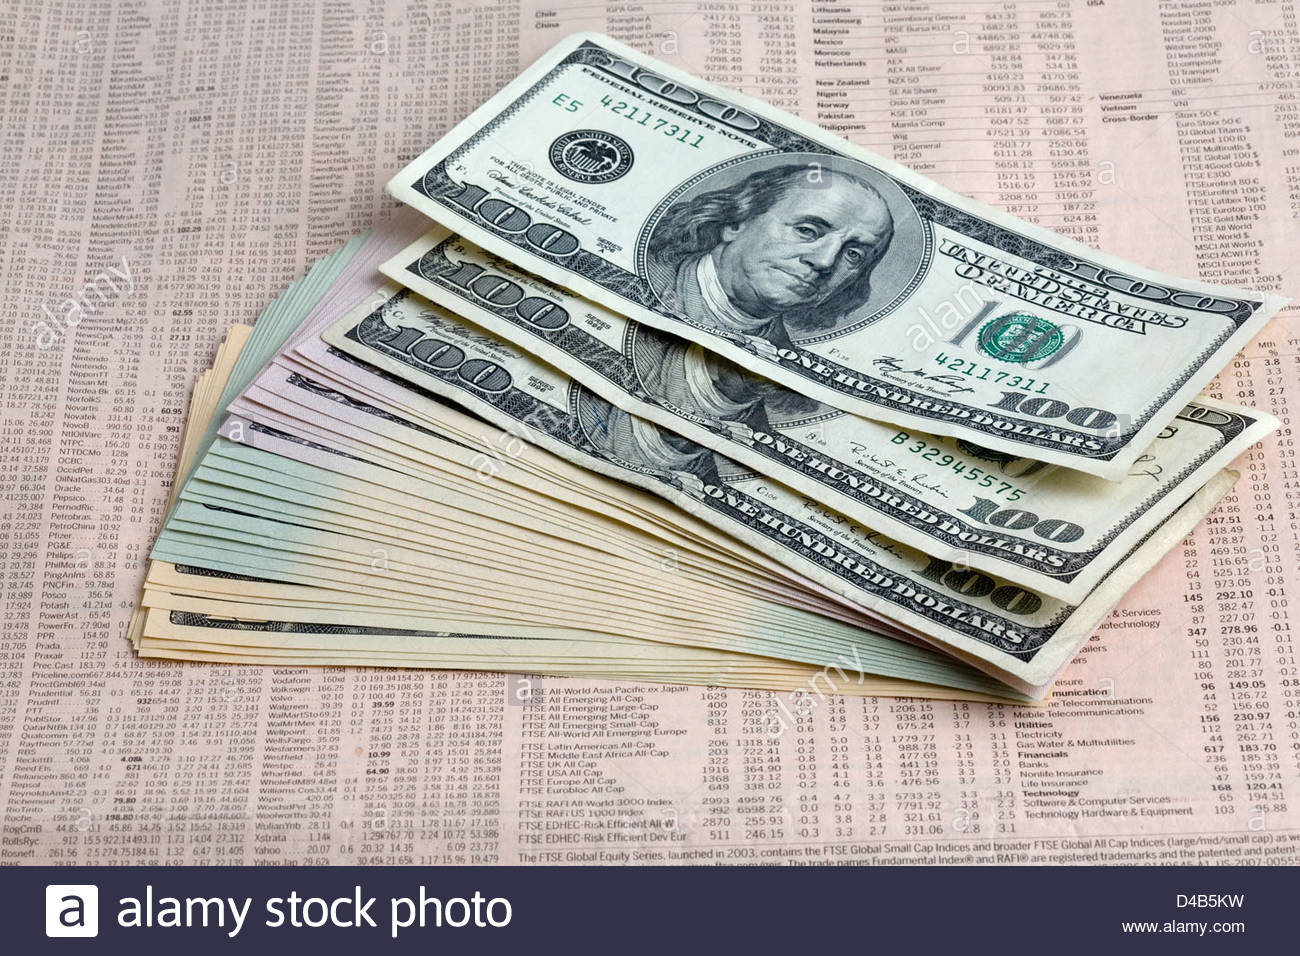 Dollar symbol laying on dollar bills on the financial pages of a newspaper. - Stock Image